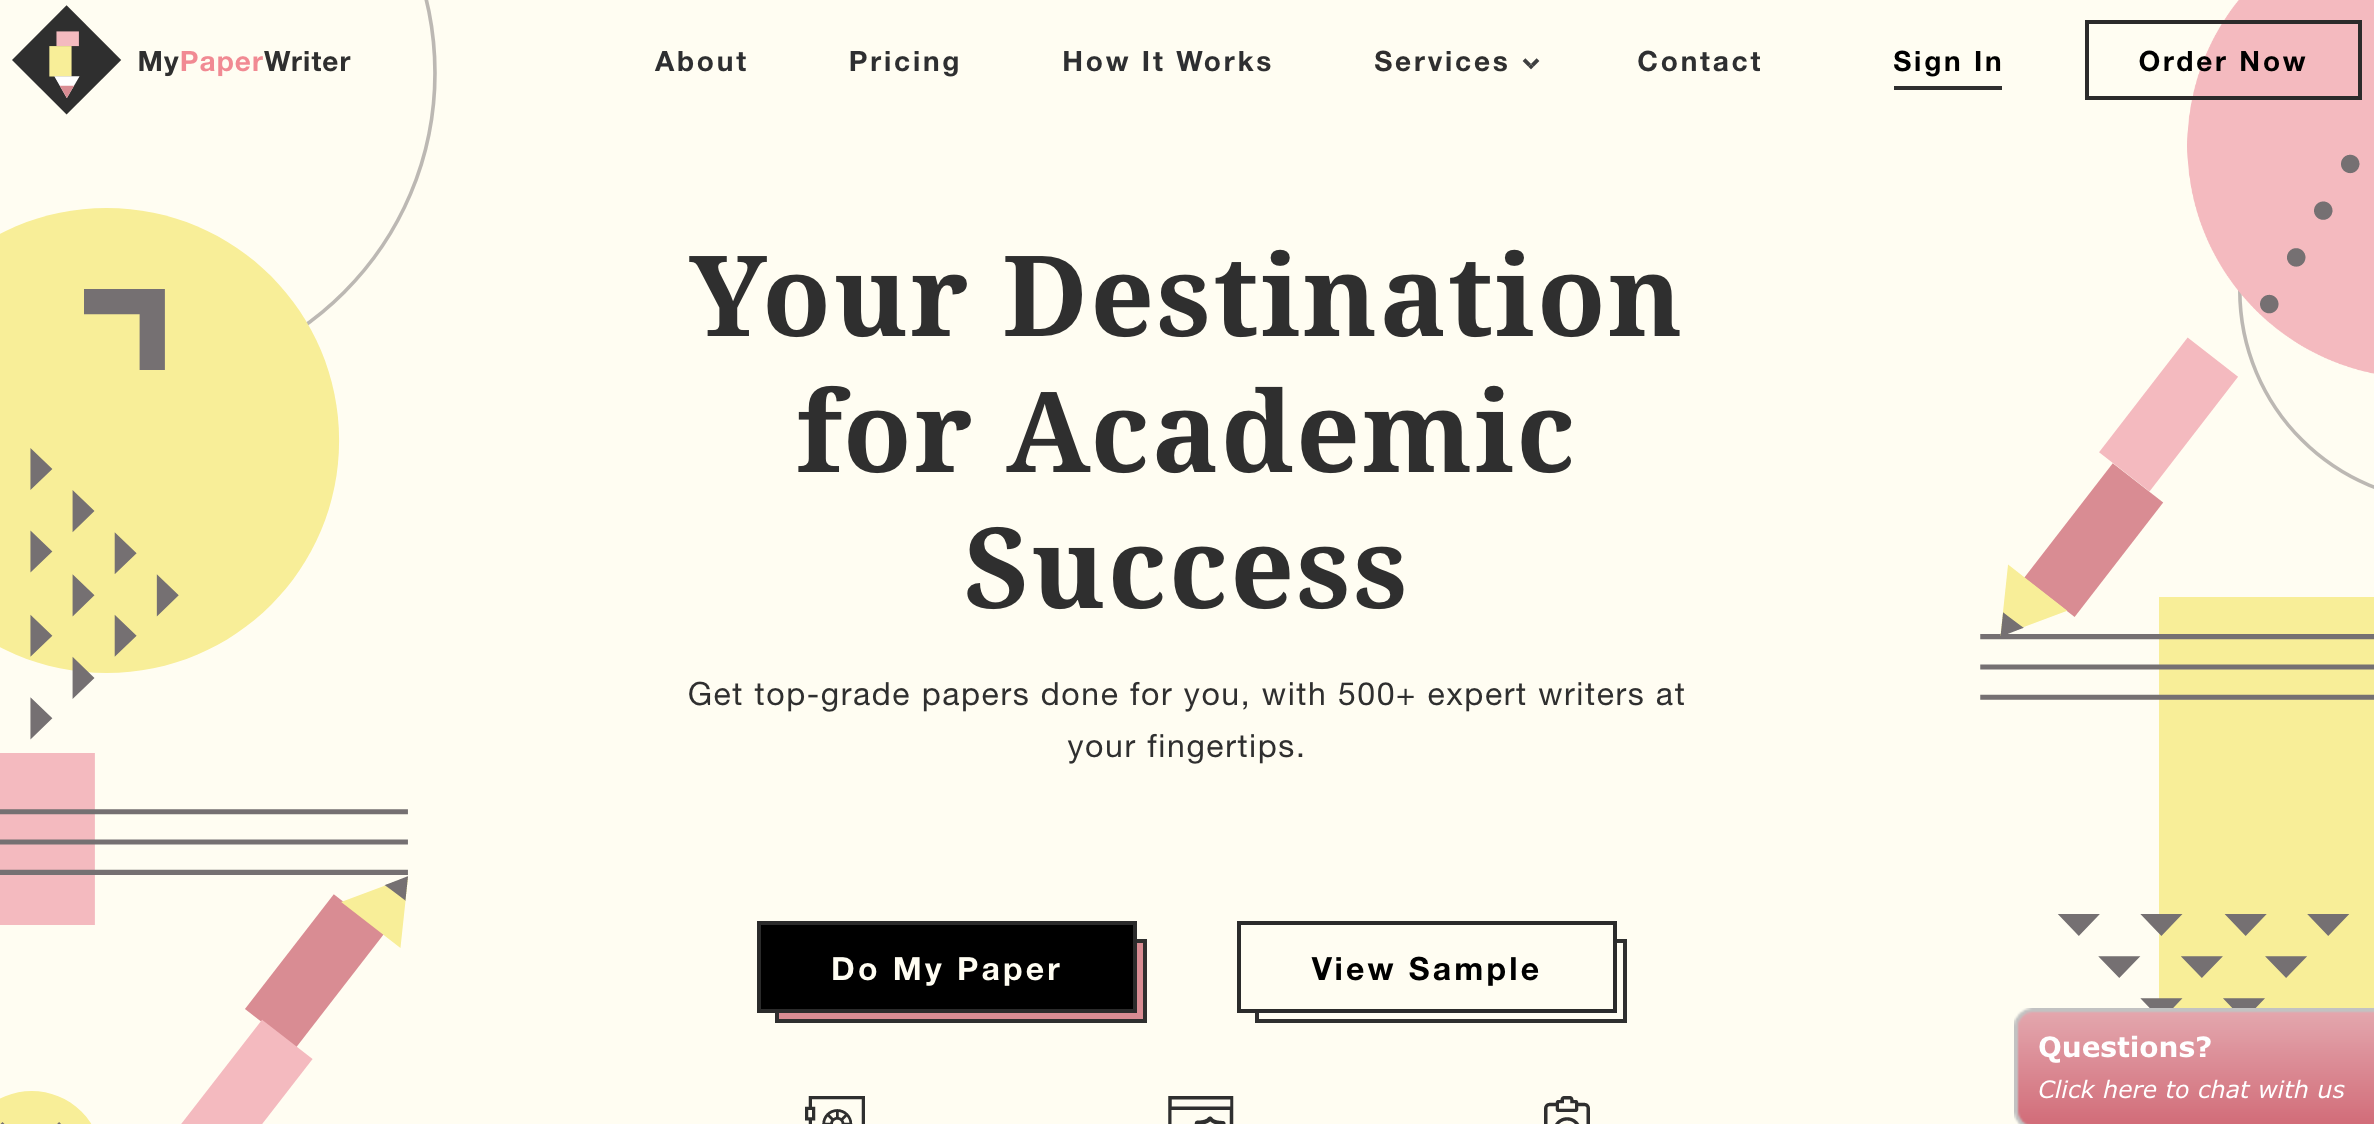 mypaperwriter website